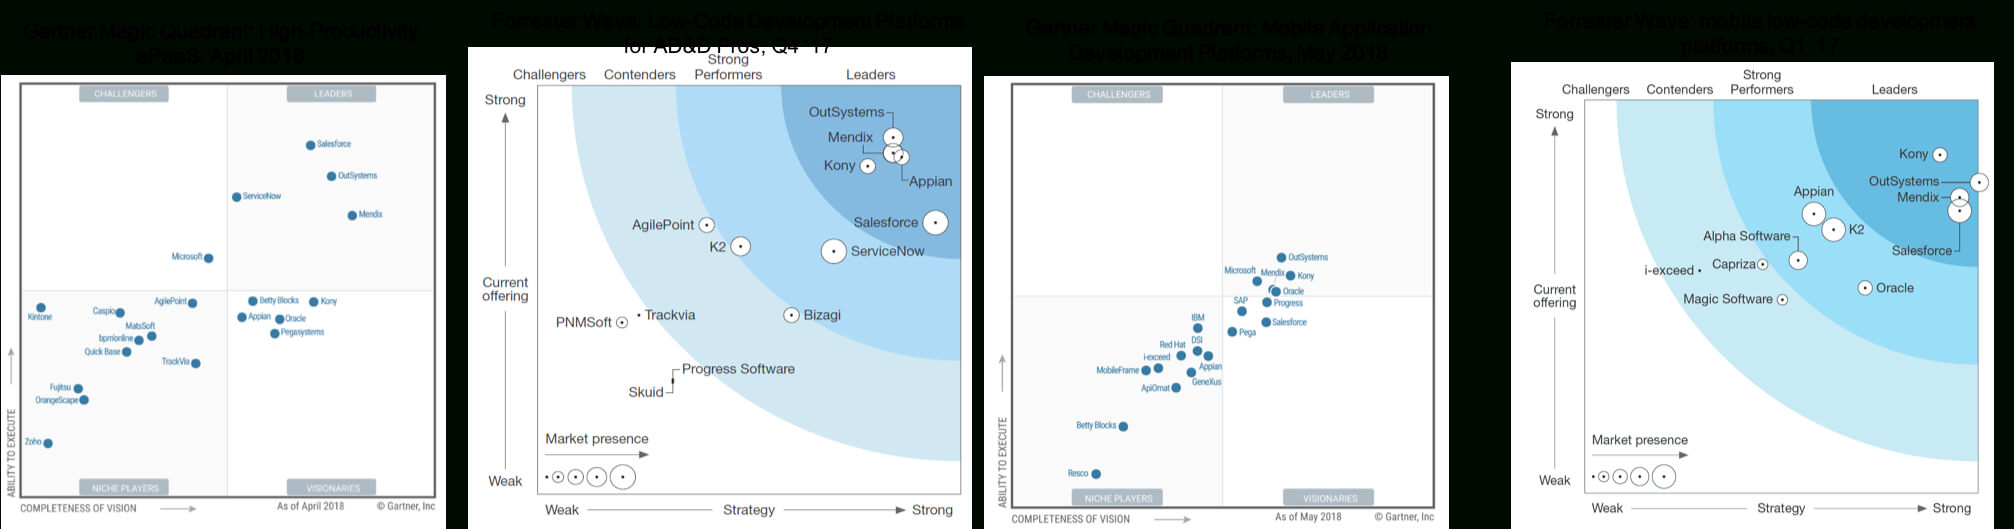 Gartner Magic Quadrant & Forrester Wave Analyses | Mendix Throughout Gartner Certificate Templates